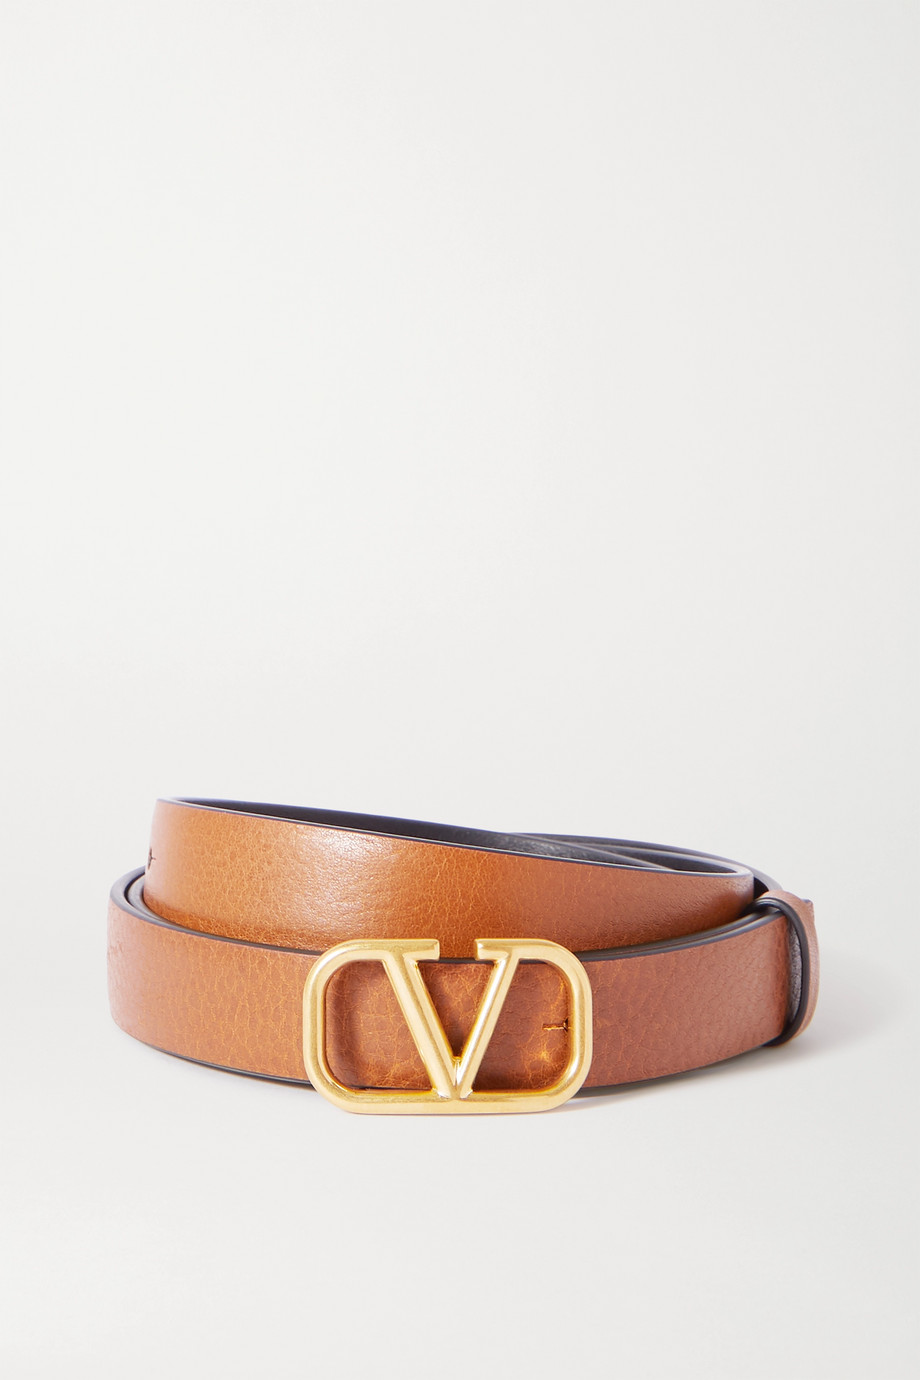 Valentino Valentino Garavani reversible leather belt